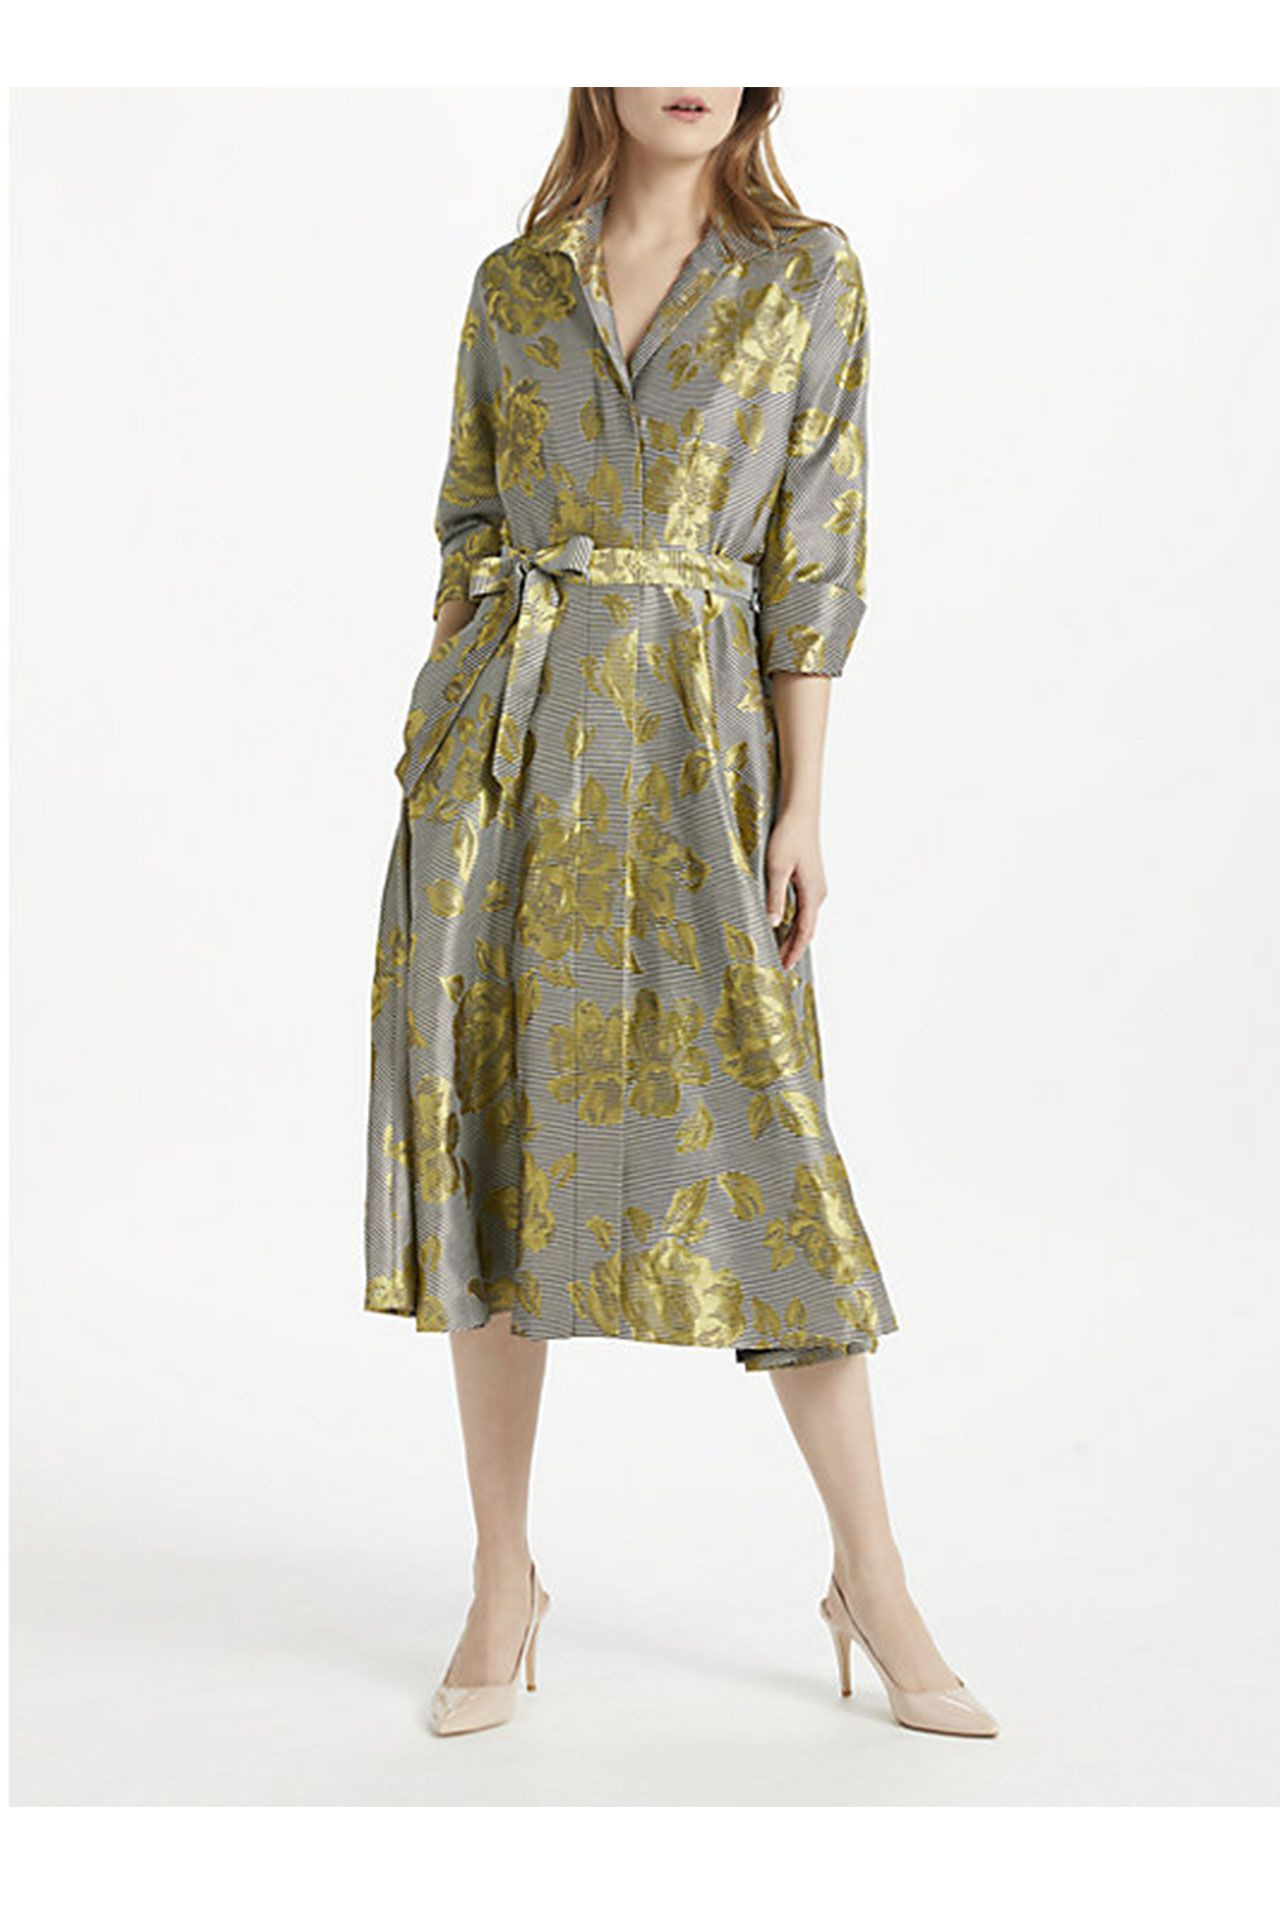 Unusual Mother Of The Bride Outfit Bruce By Oldfield Fl Jacquard Shirt Dress